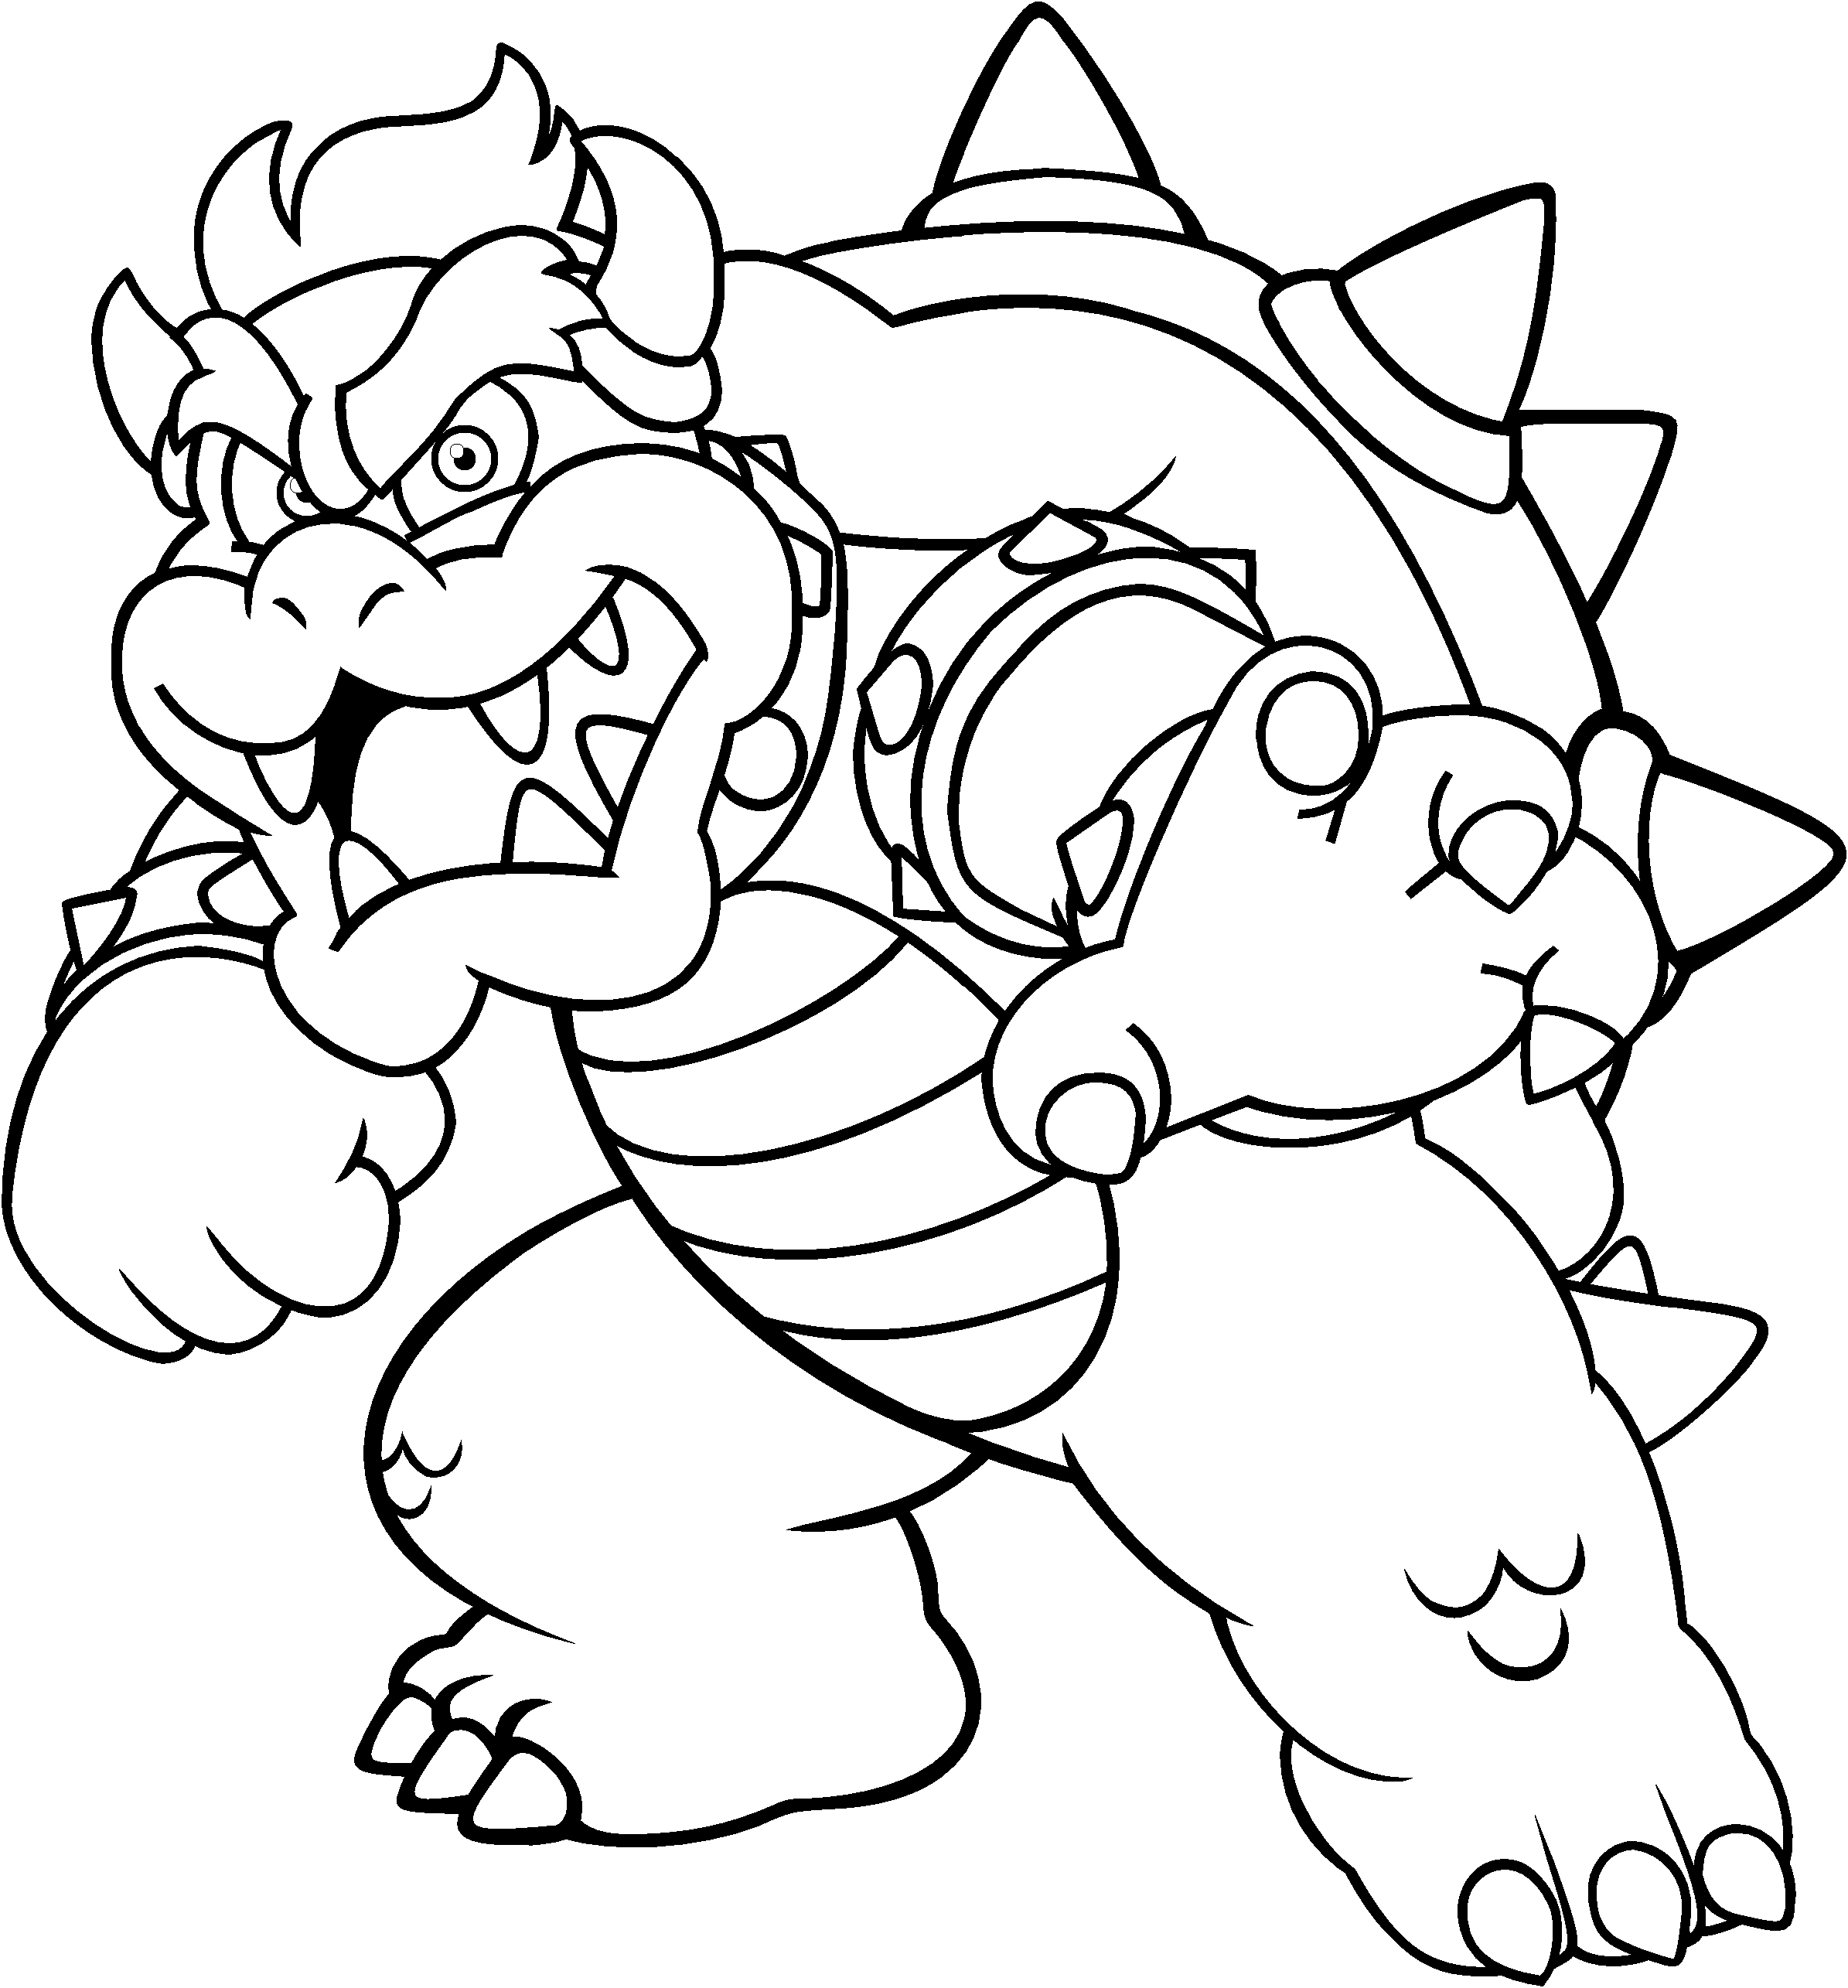 Bowser coloring